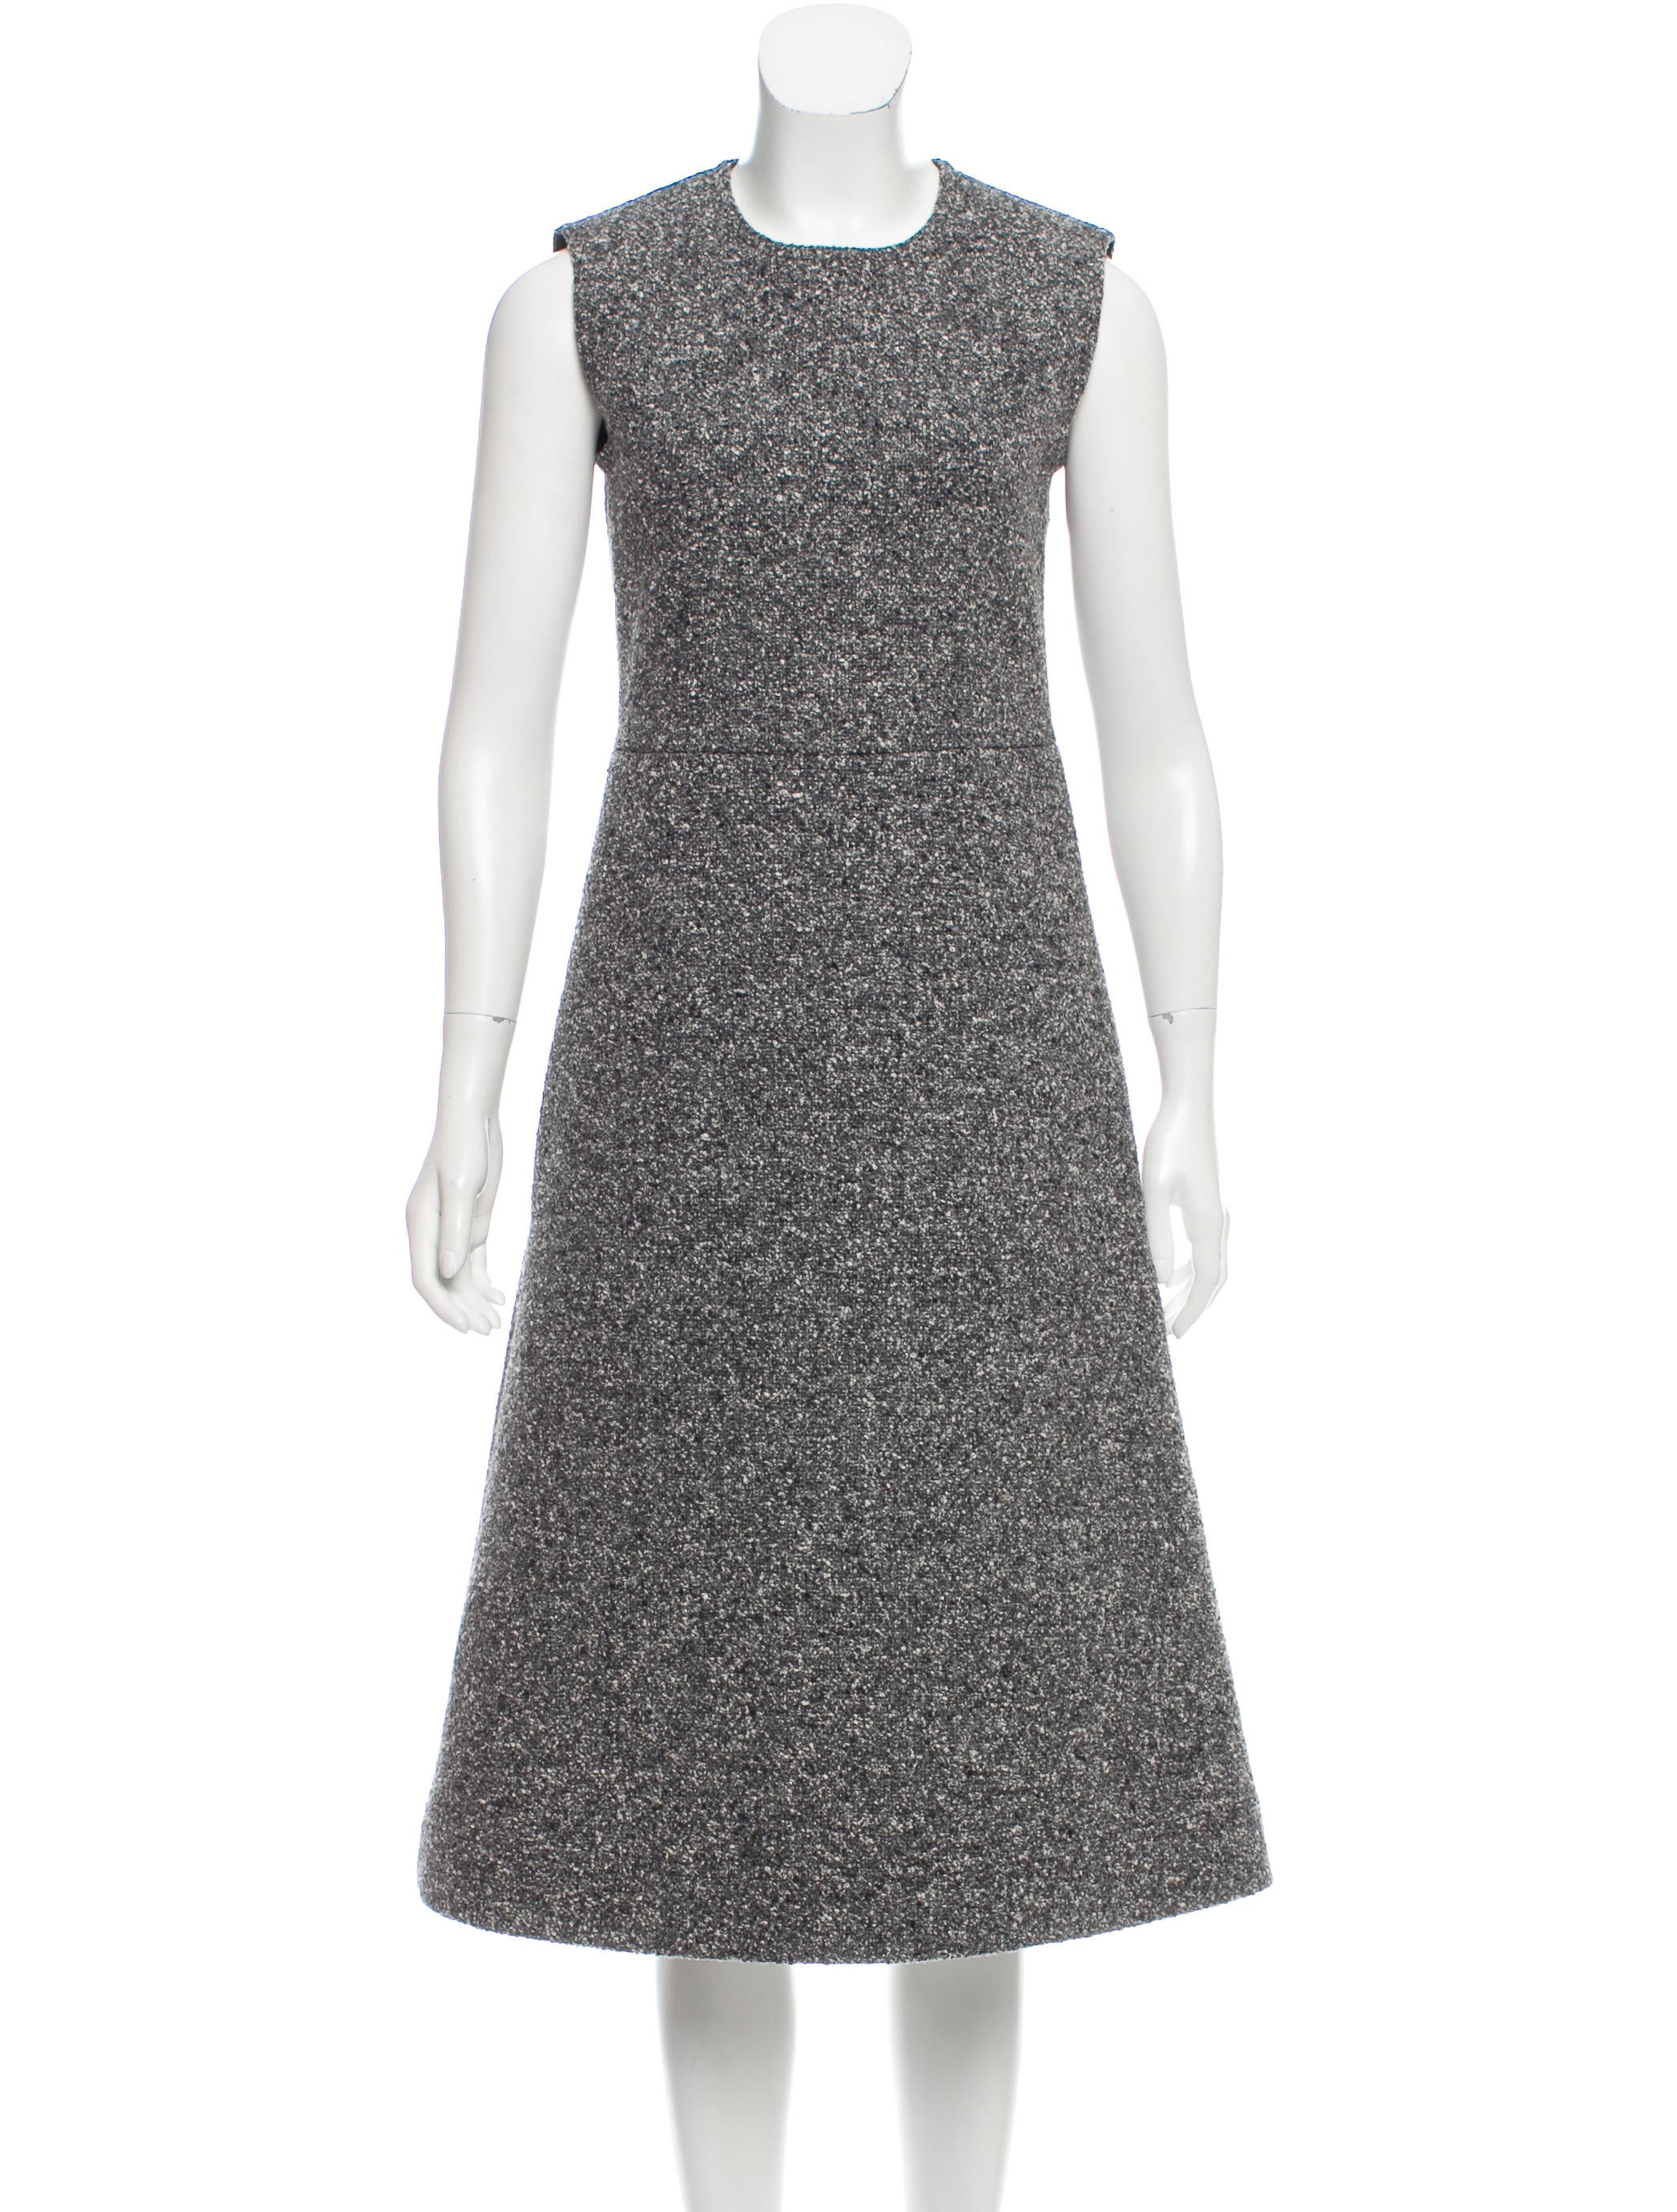 b197538953f2 Céline Sleeveless Bouclé Dress - Clothing - CEL62397